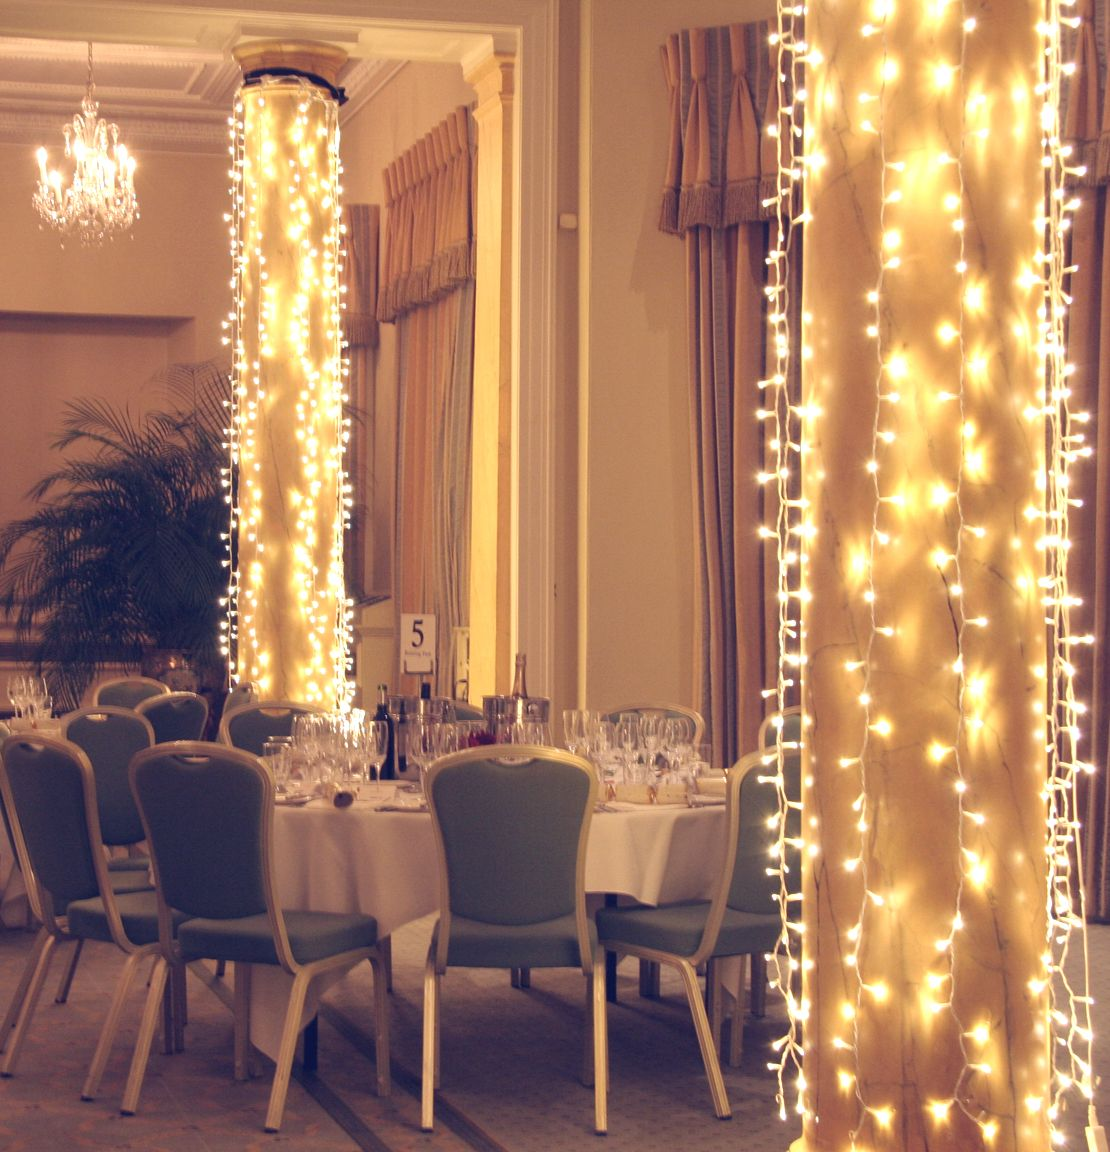 Warm White Event Lighting At Rudding Park Hotel, North